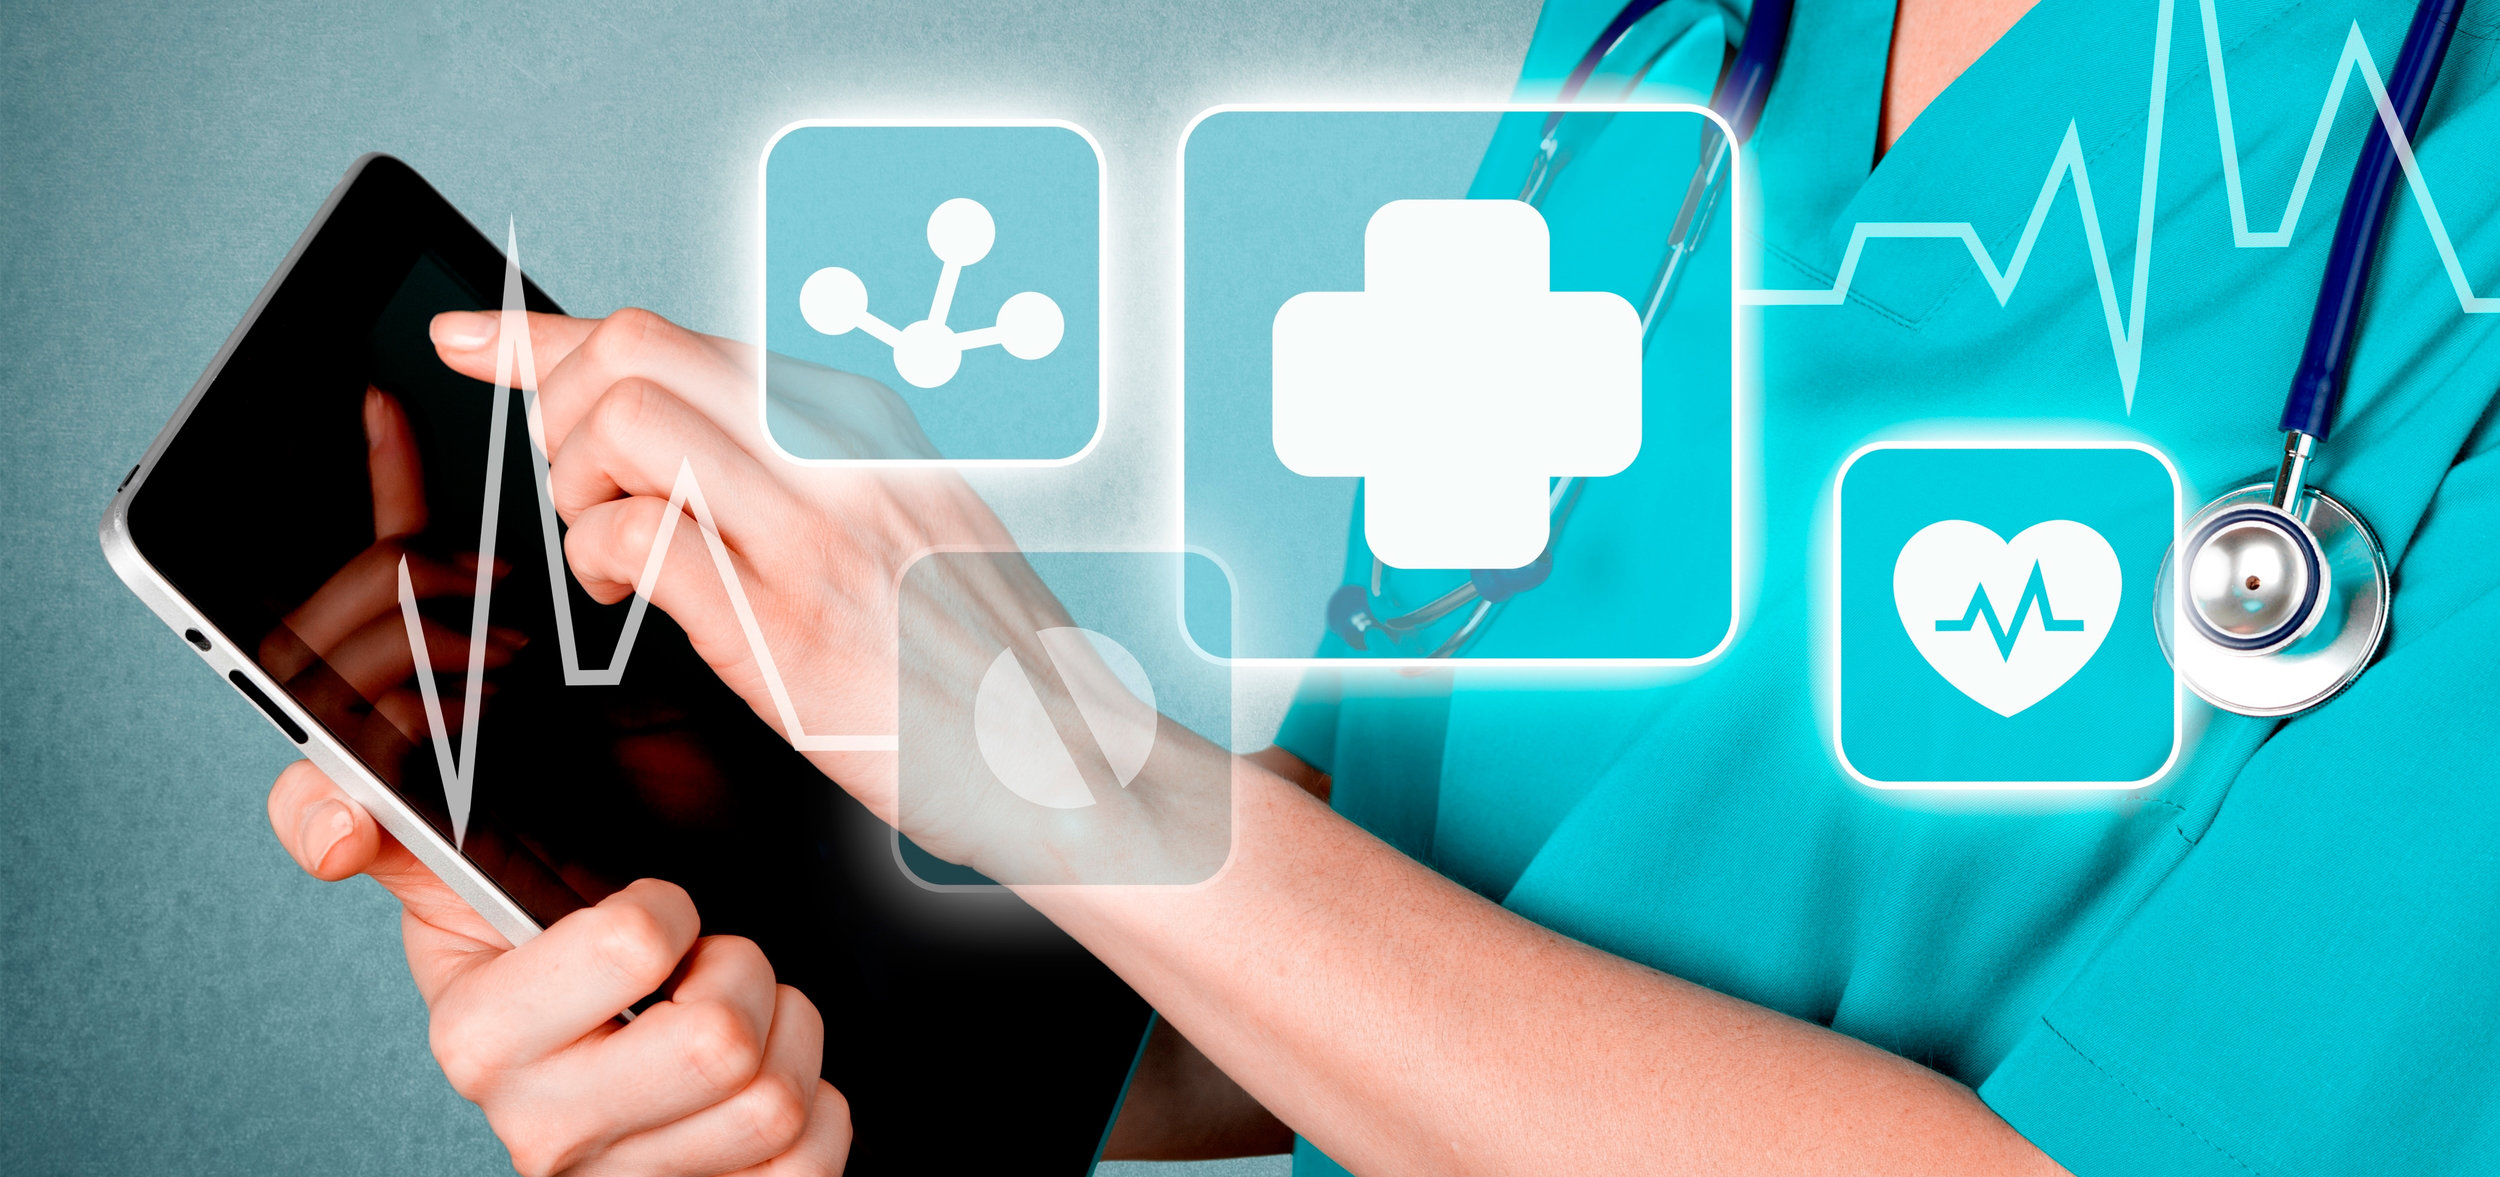 Outdated-Healthcare-Security-Banner.jpg